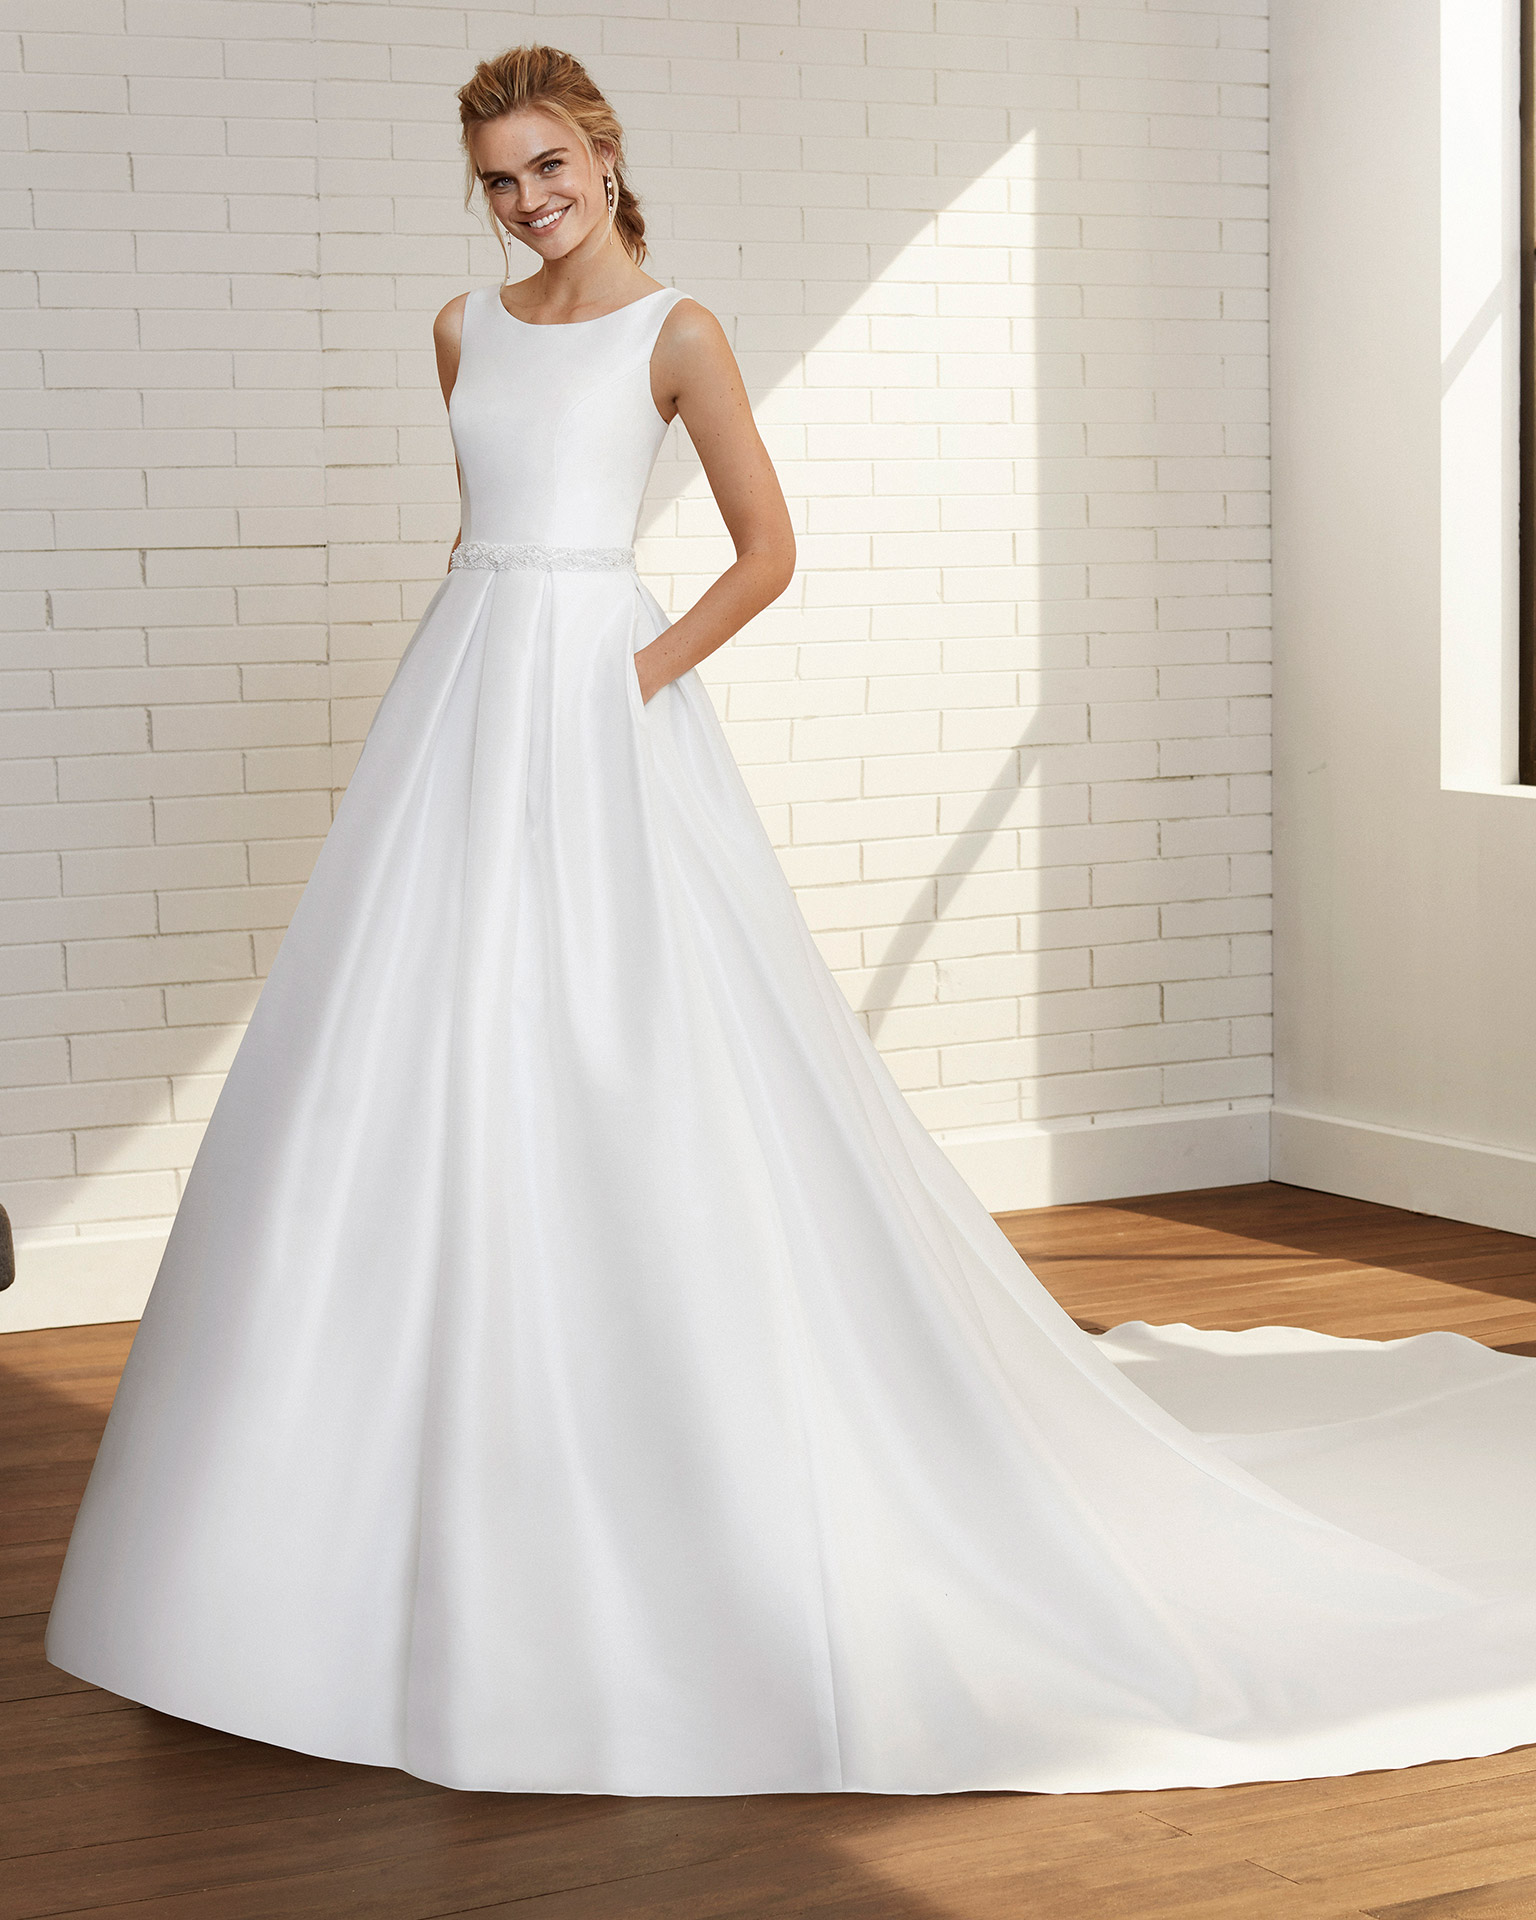 Classic wedding dress in beaded bari with bateau neckline and V-back. 2020  Collection.